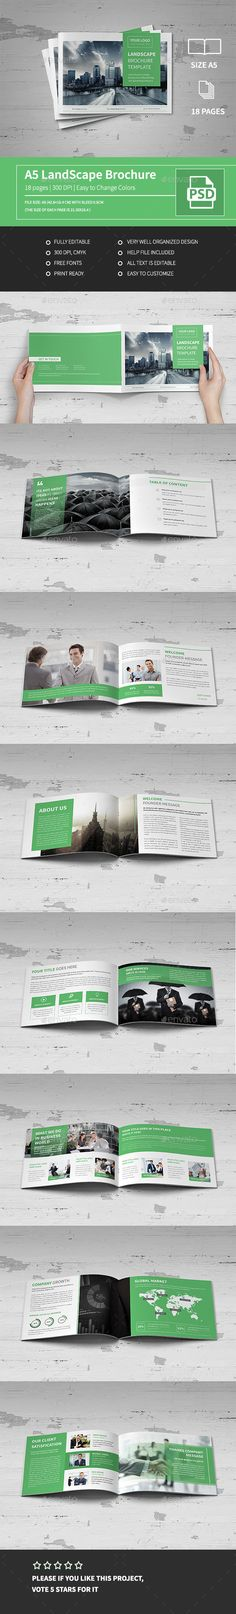 A5 Corporate Business Landscape Brochure Template PSD #design Download: http://graphicriver.net/item/a5-corporate-business-landscape-brochure/14231032?ref=ksioks